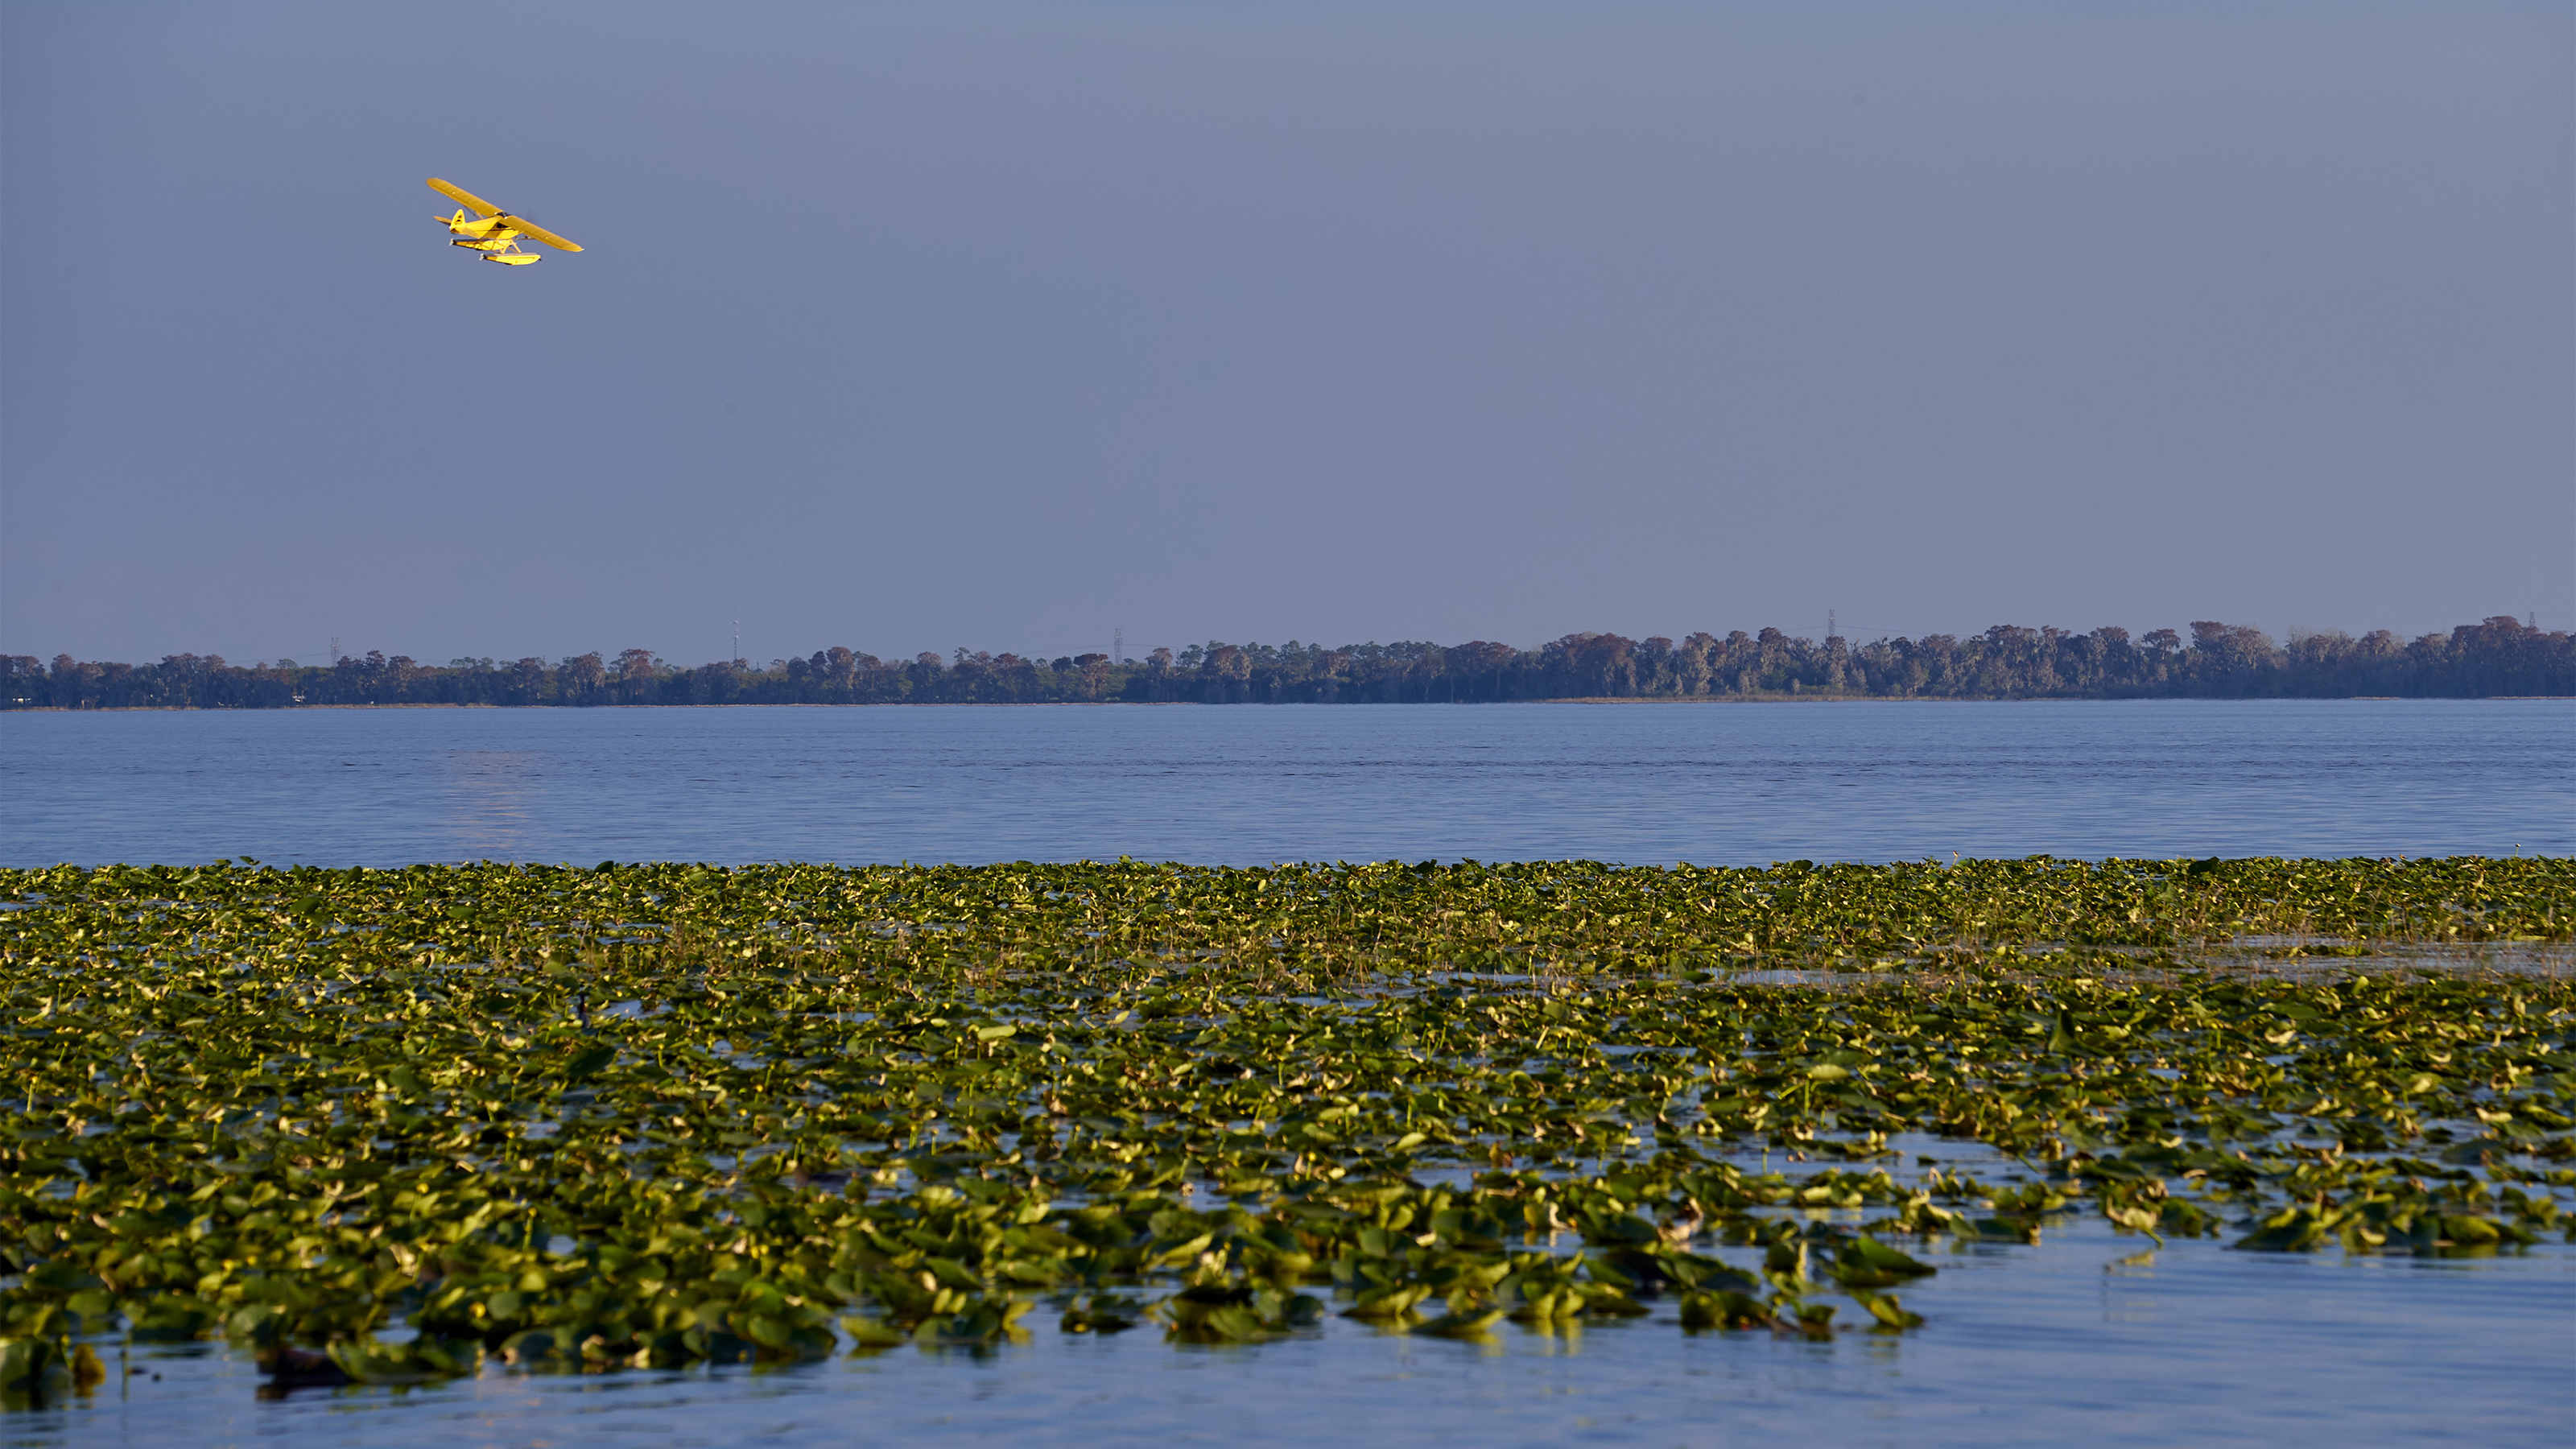 AOPA's Sweepstakes Super Cub flies over Florida's Lake Pierce with its new Wipaire 2100 amphibious floats.